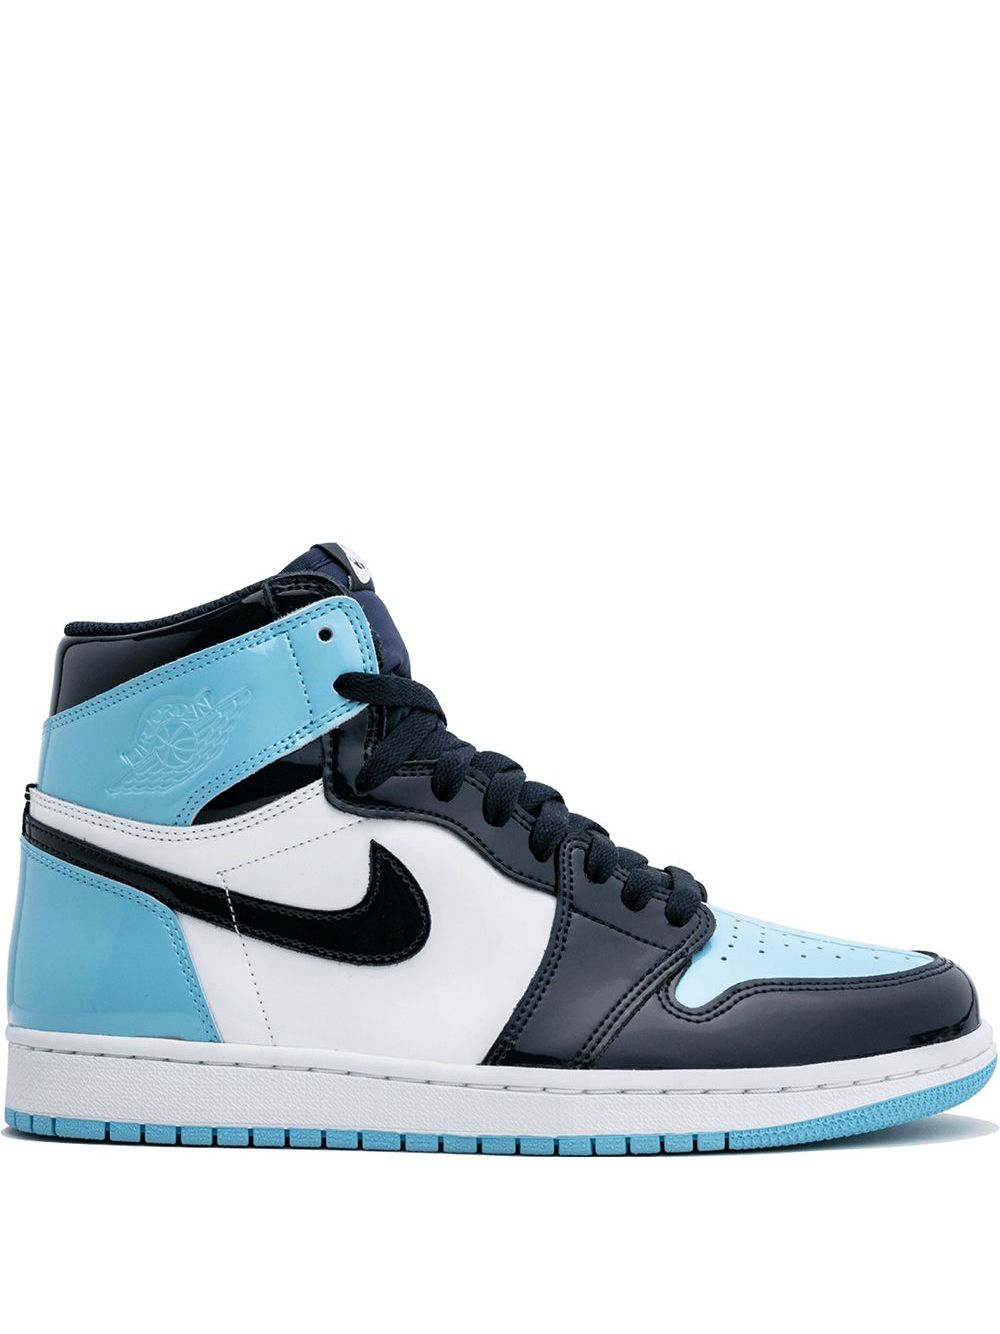 best service 311ab 84c0a Jordan  Air Jordan 1 OG  High-Top-Sneakers - Blau von Jordan